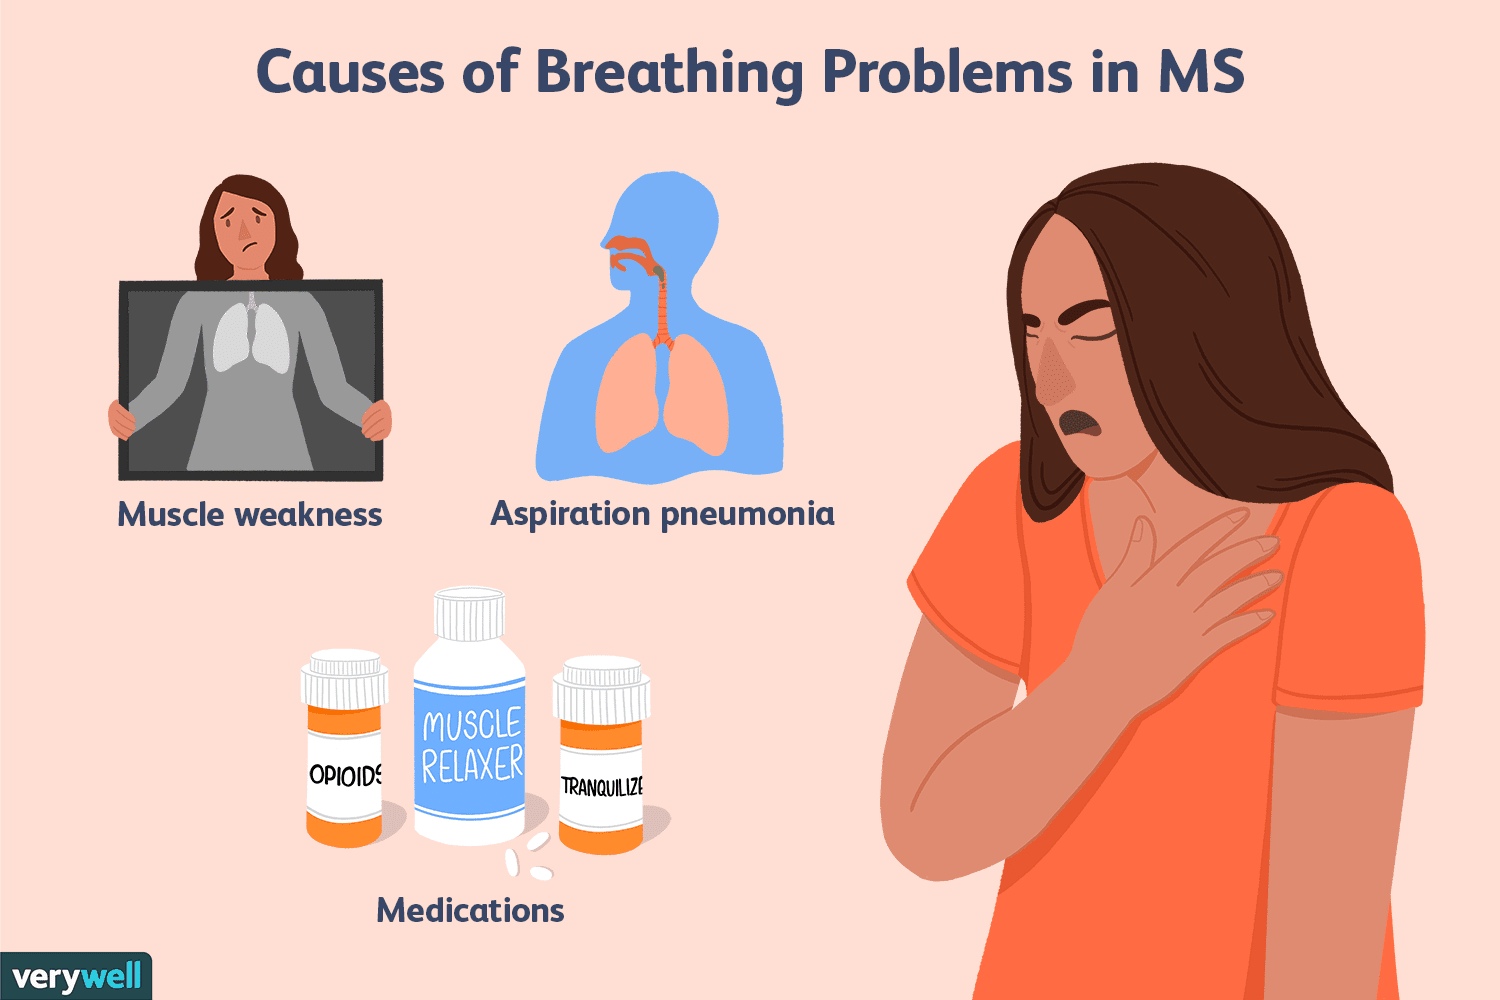 Causes of Breathing Problems in MS